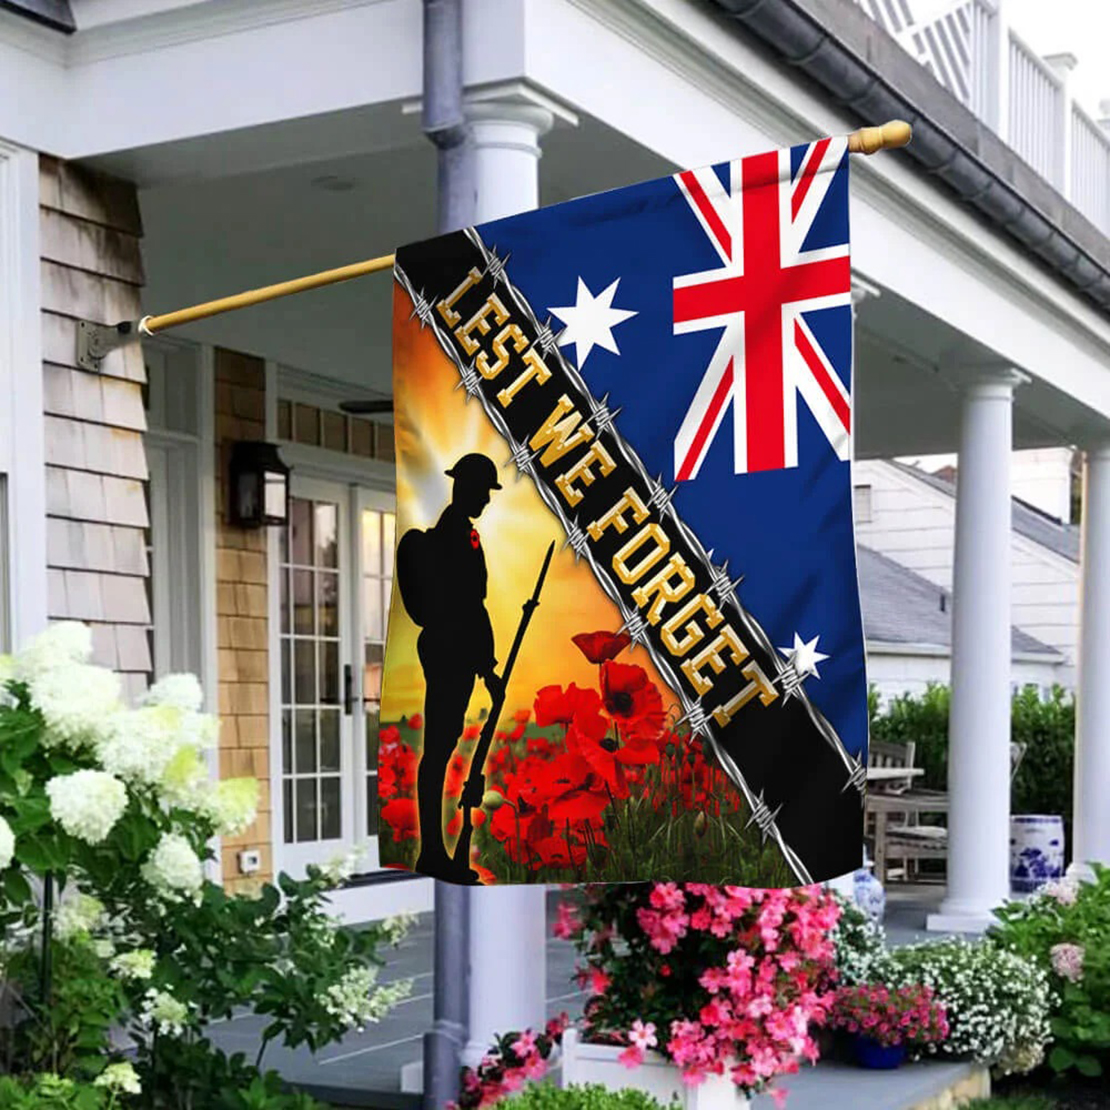 Remembrance day poppy Lest we forget Australia veteran flag - Picture 2